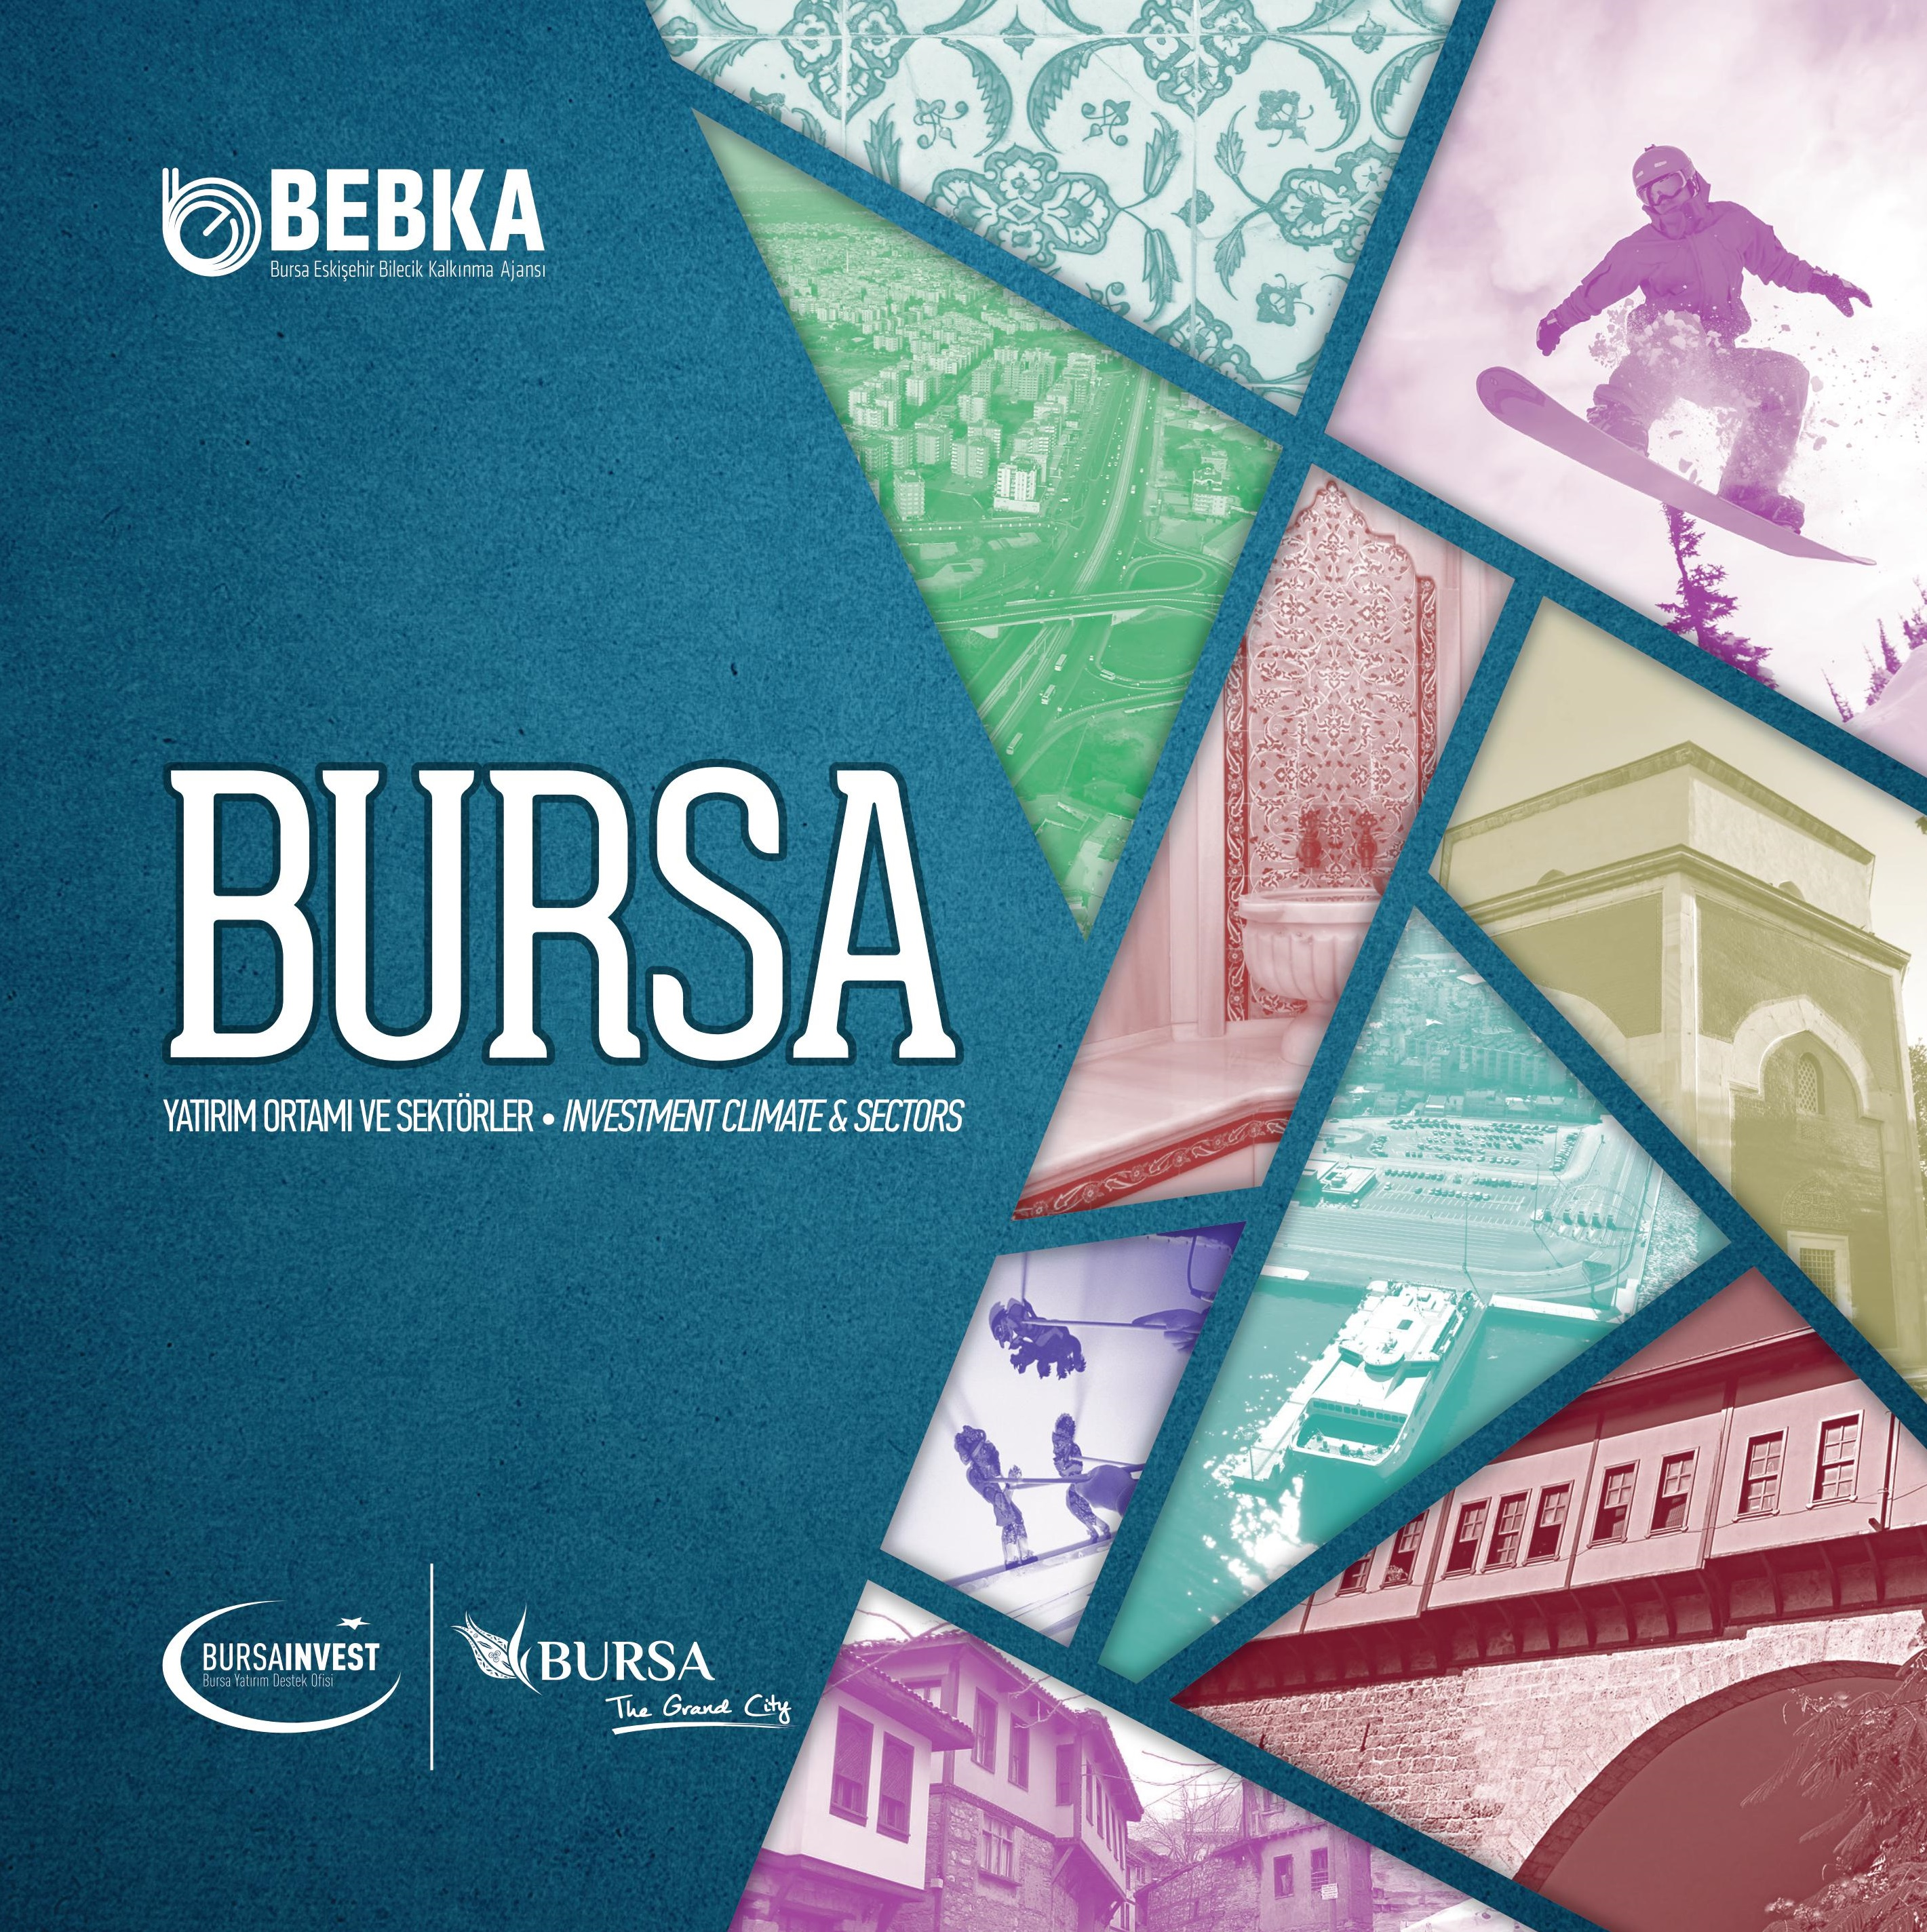 Bursa Investment Climate & Sectors